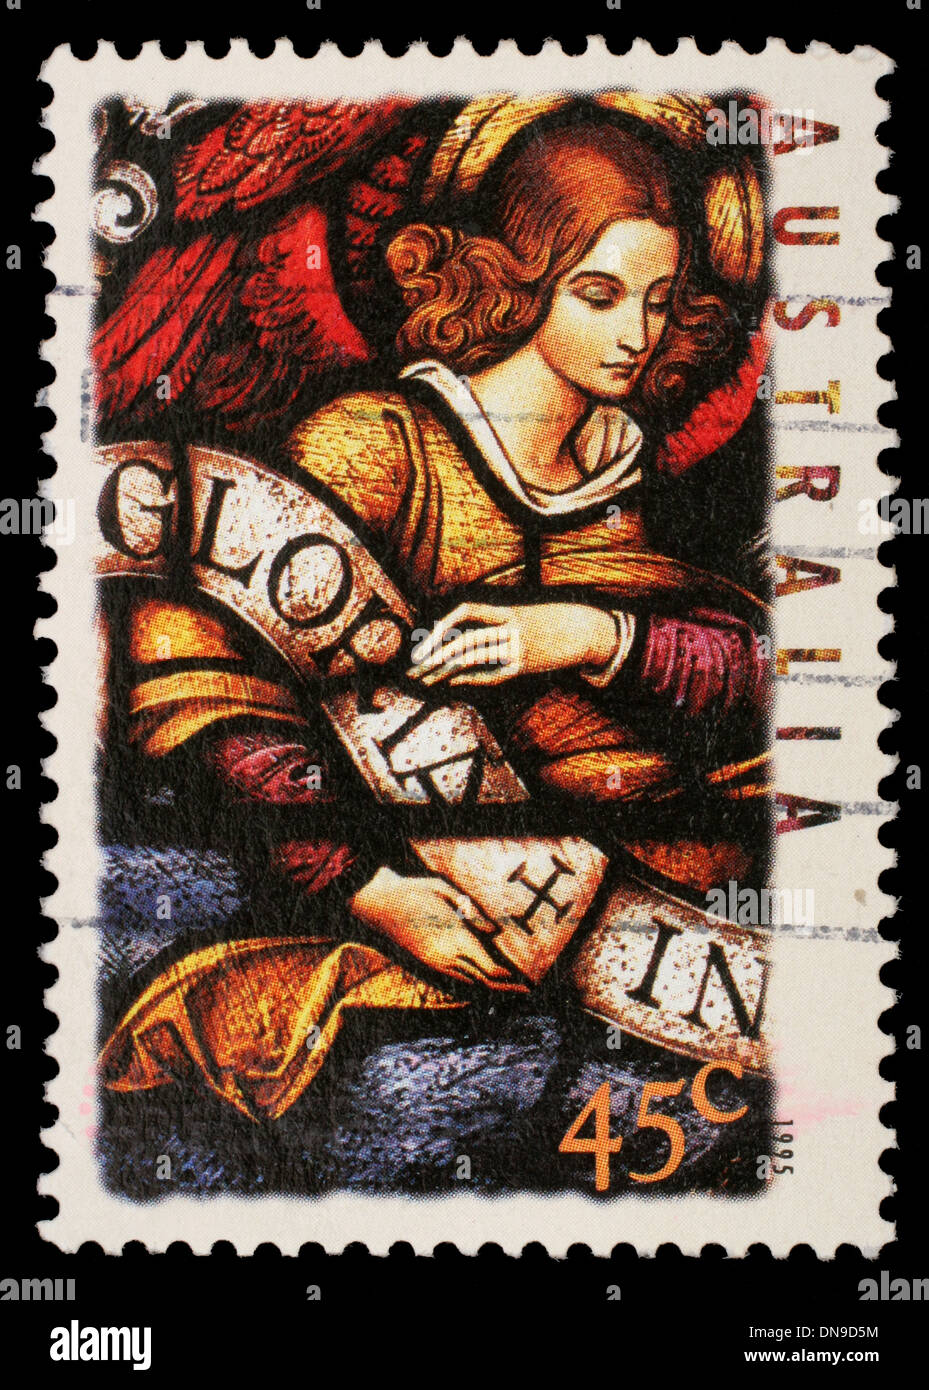 AUSTRALIA - CIRCA 1995: A stamp printed in Australia shows Angel with Gloria in excelsis Deo Banner, circa 1995 - Stock Image